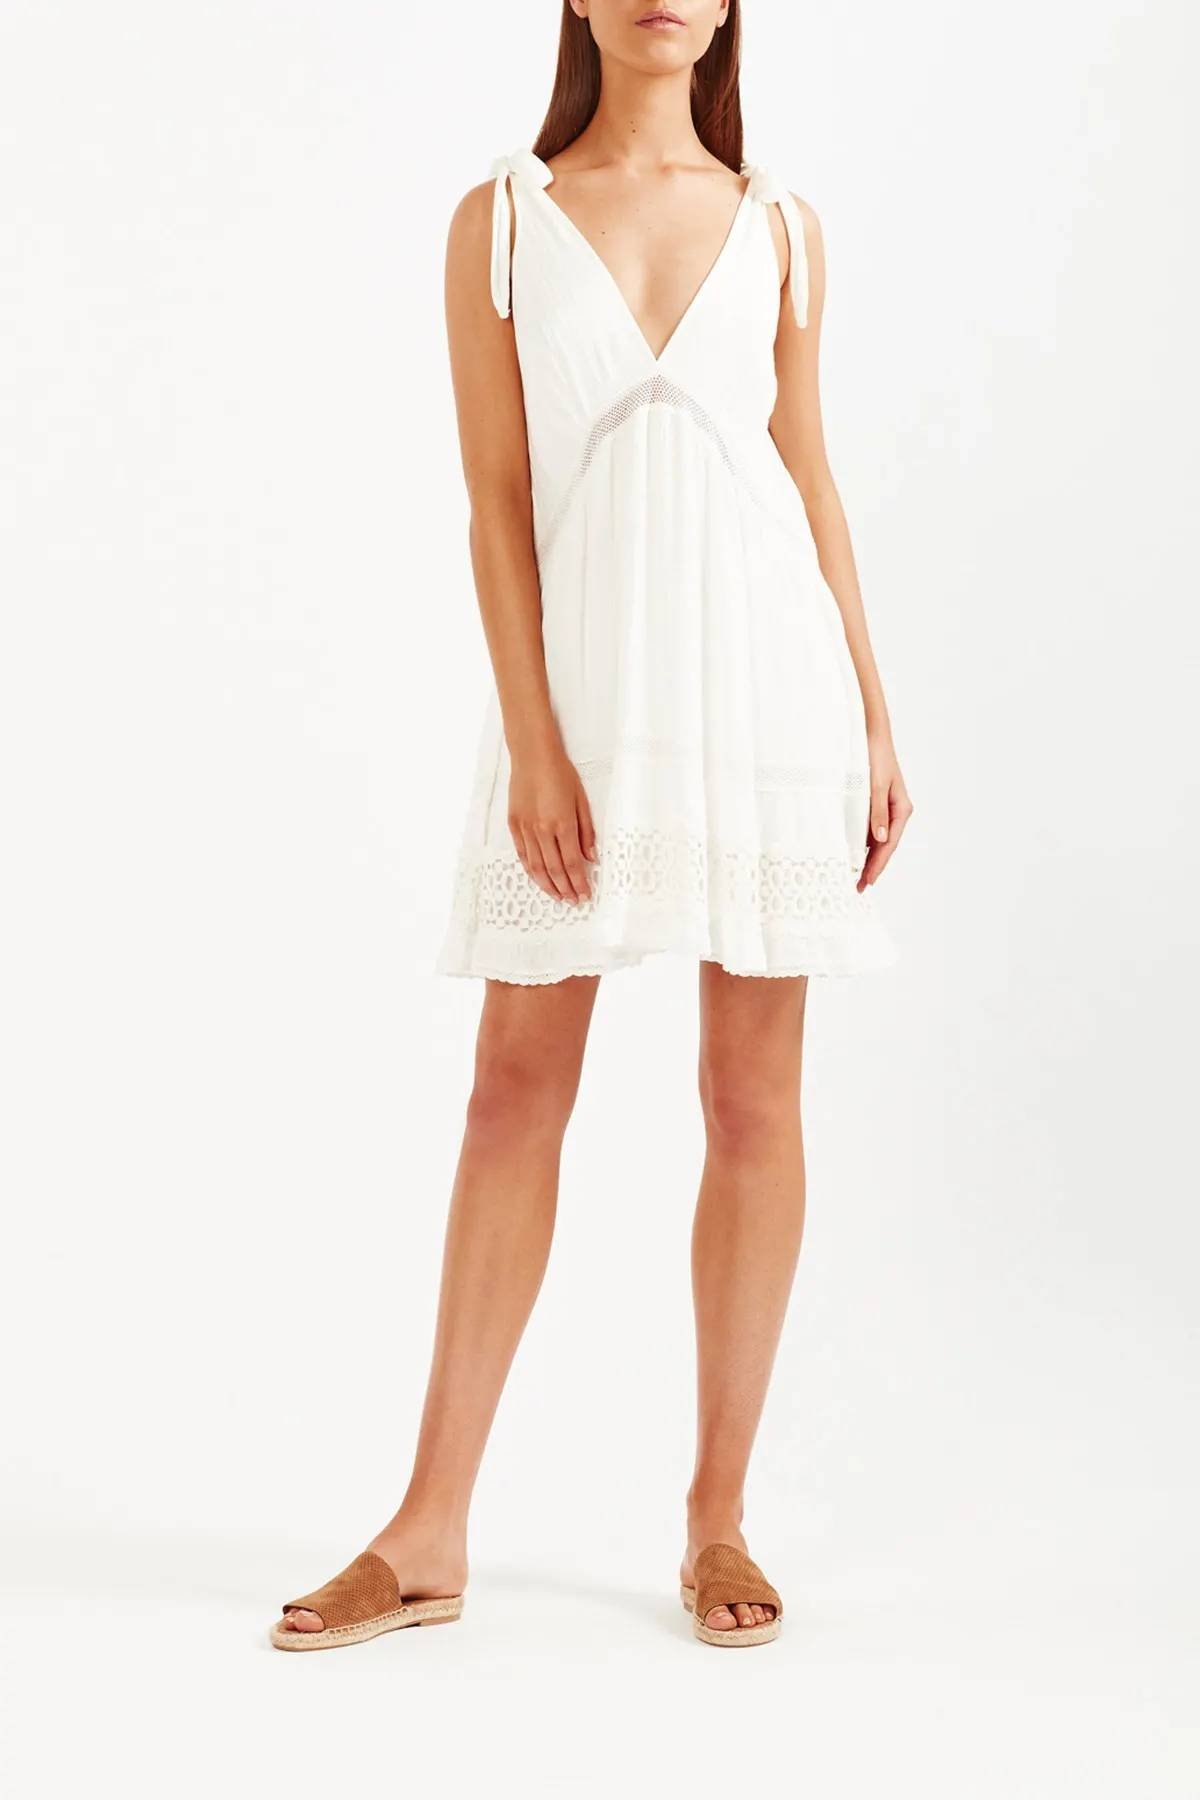 Tigerlily Womens Sofia Mini Dress - White